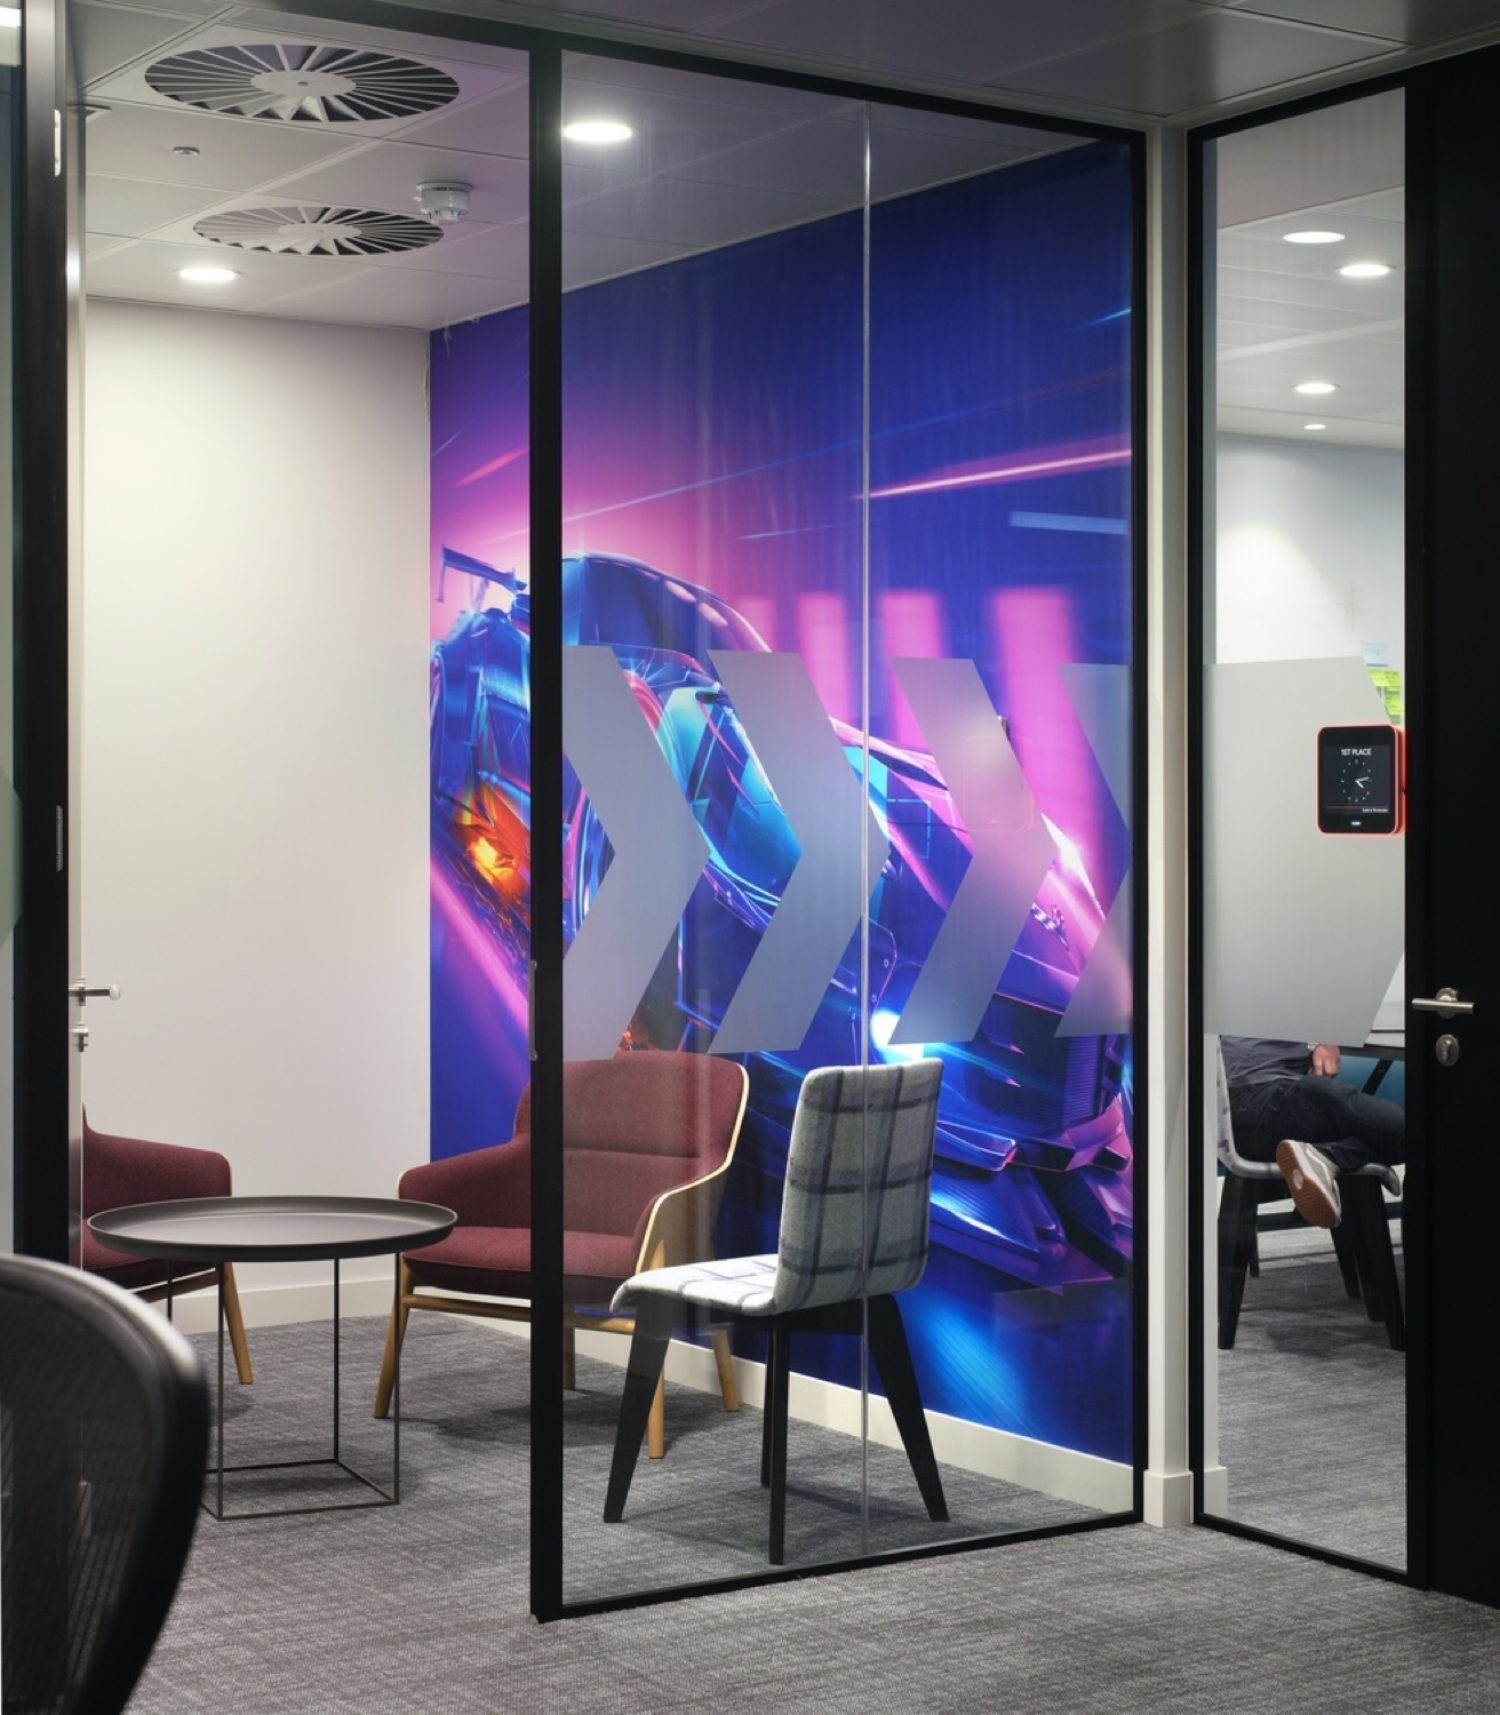 Cool designed office with car image